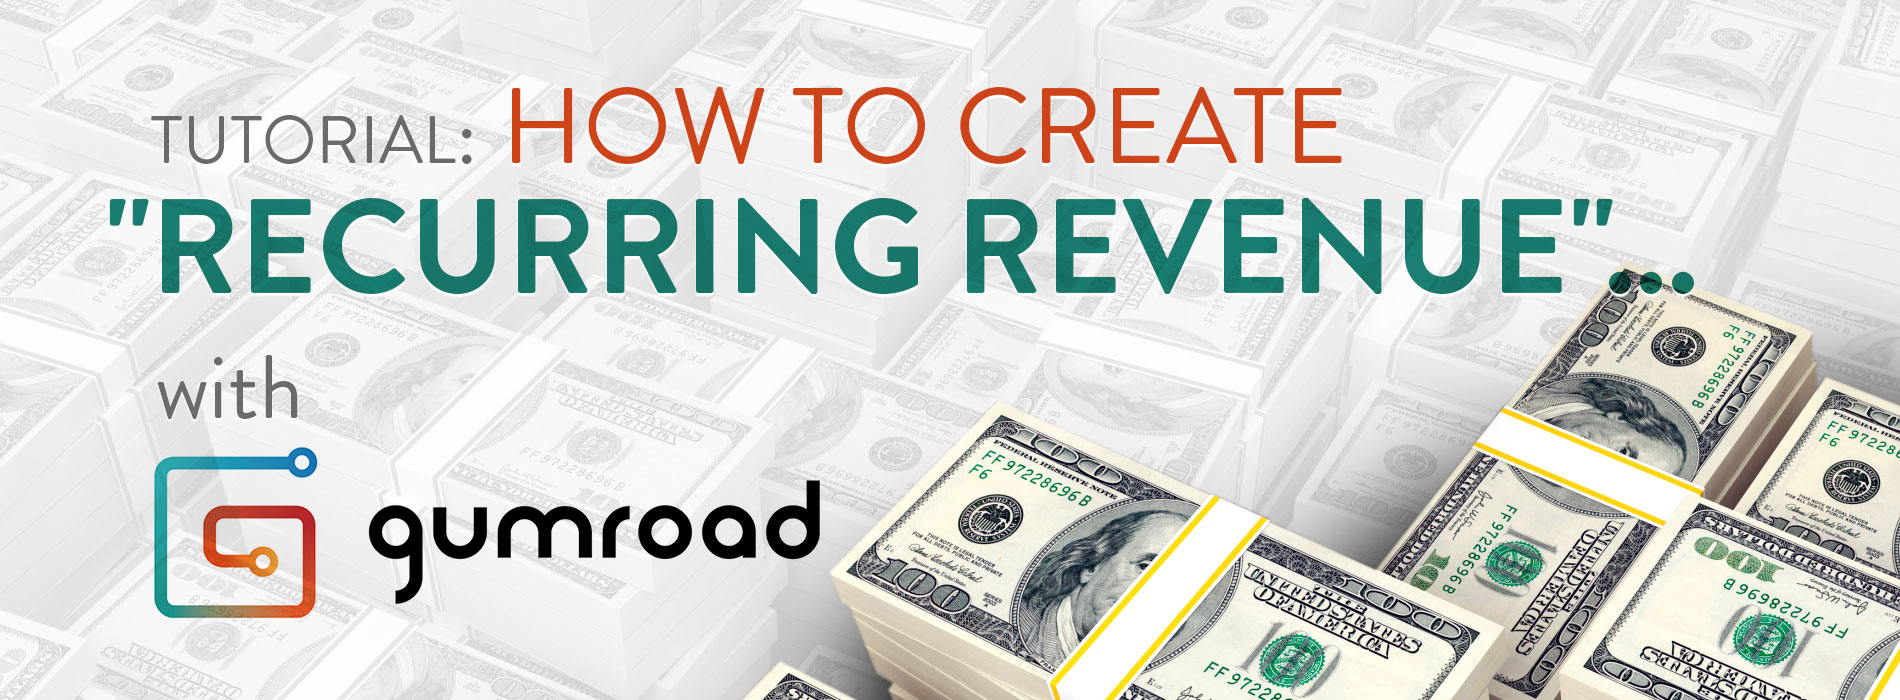 how-to-create-recurring-revenue-with-gumroad